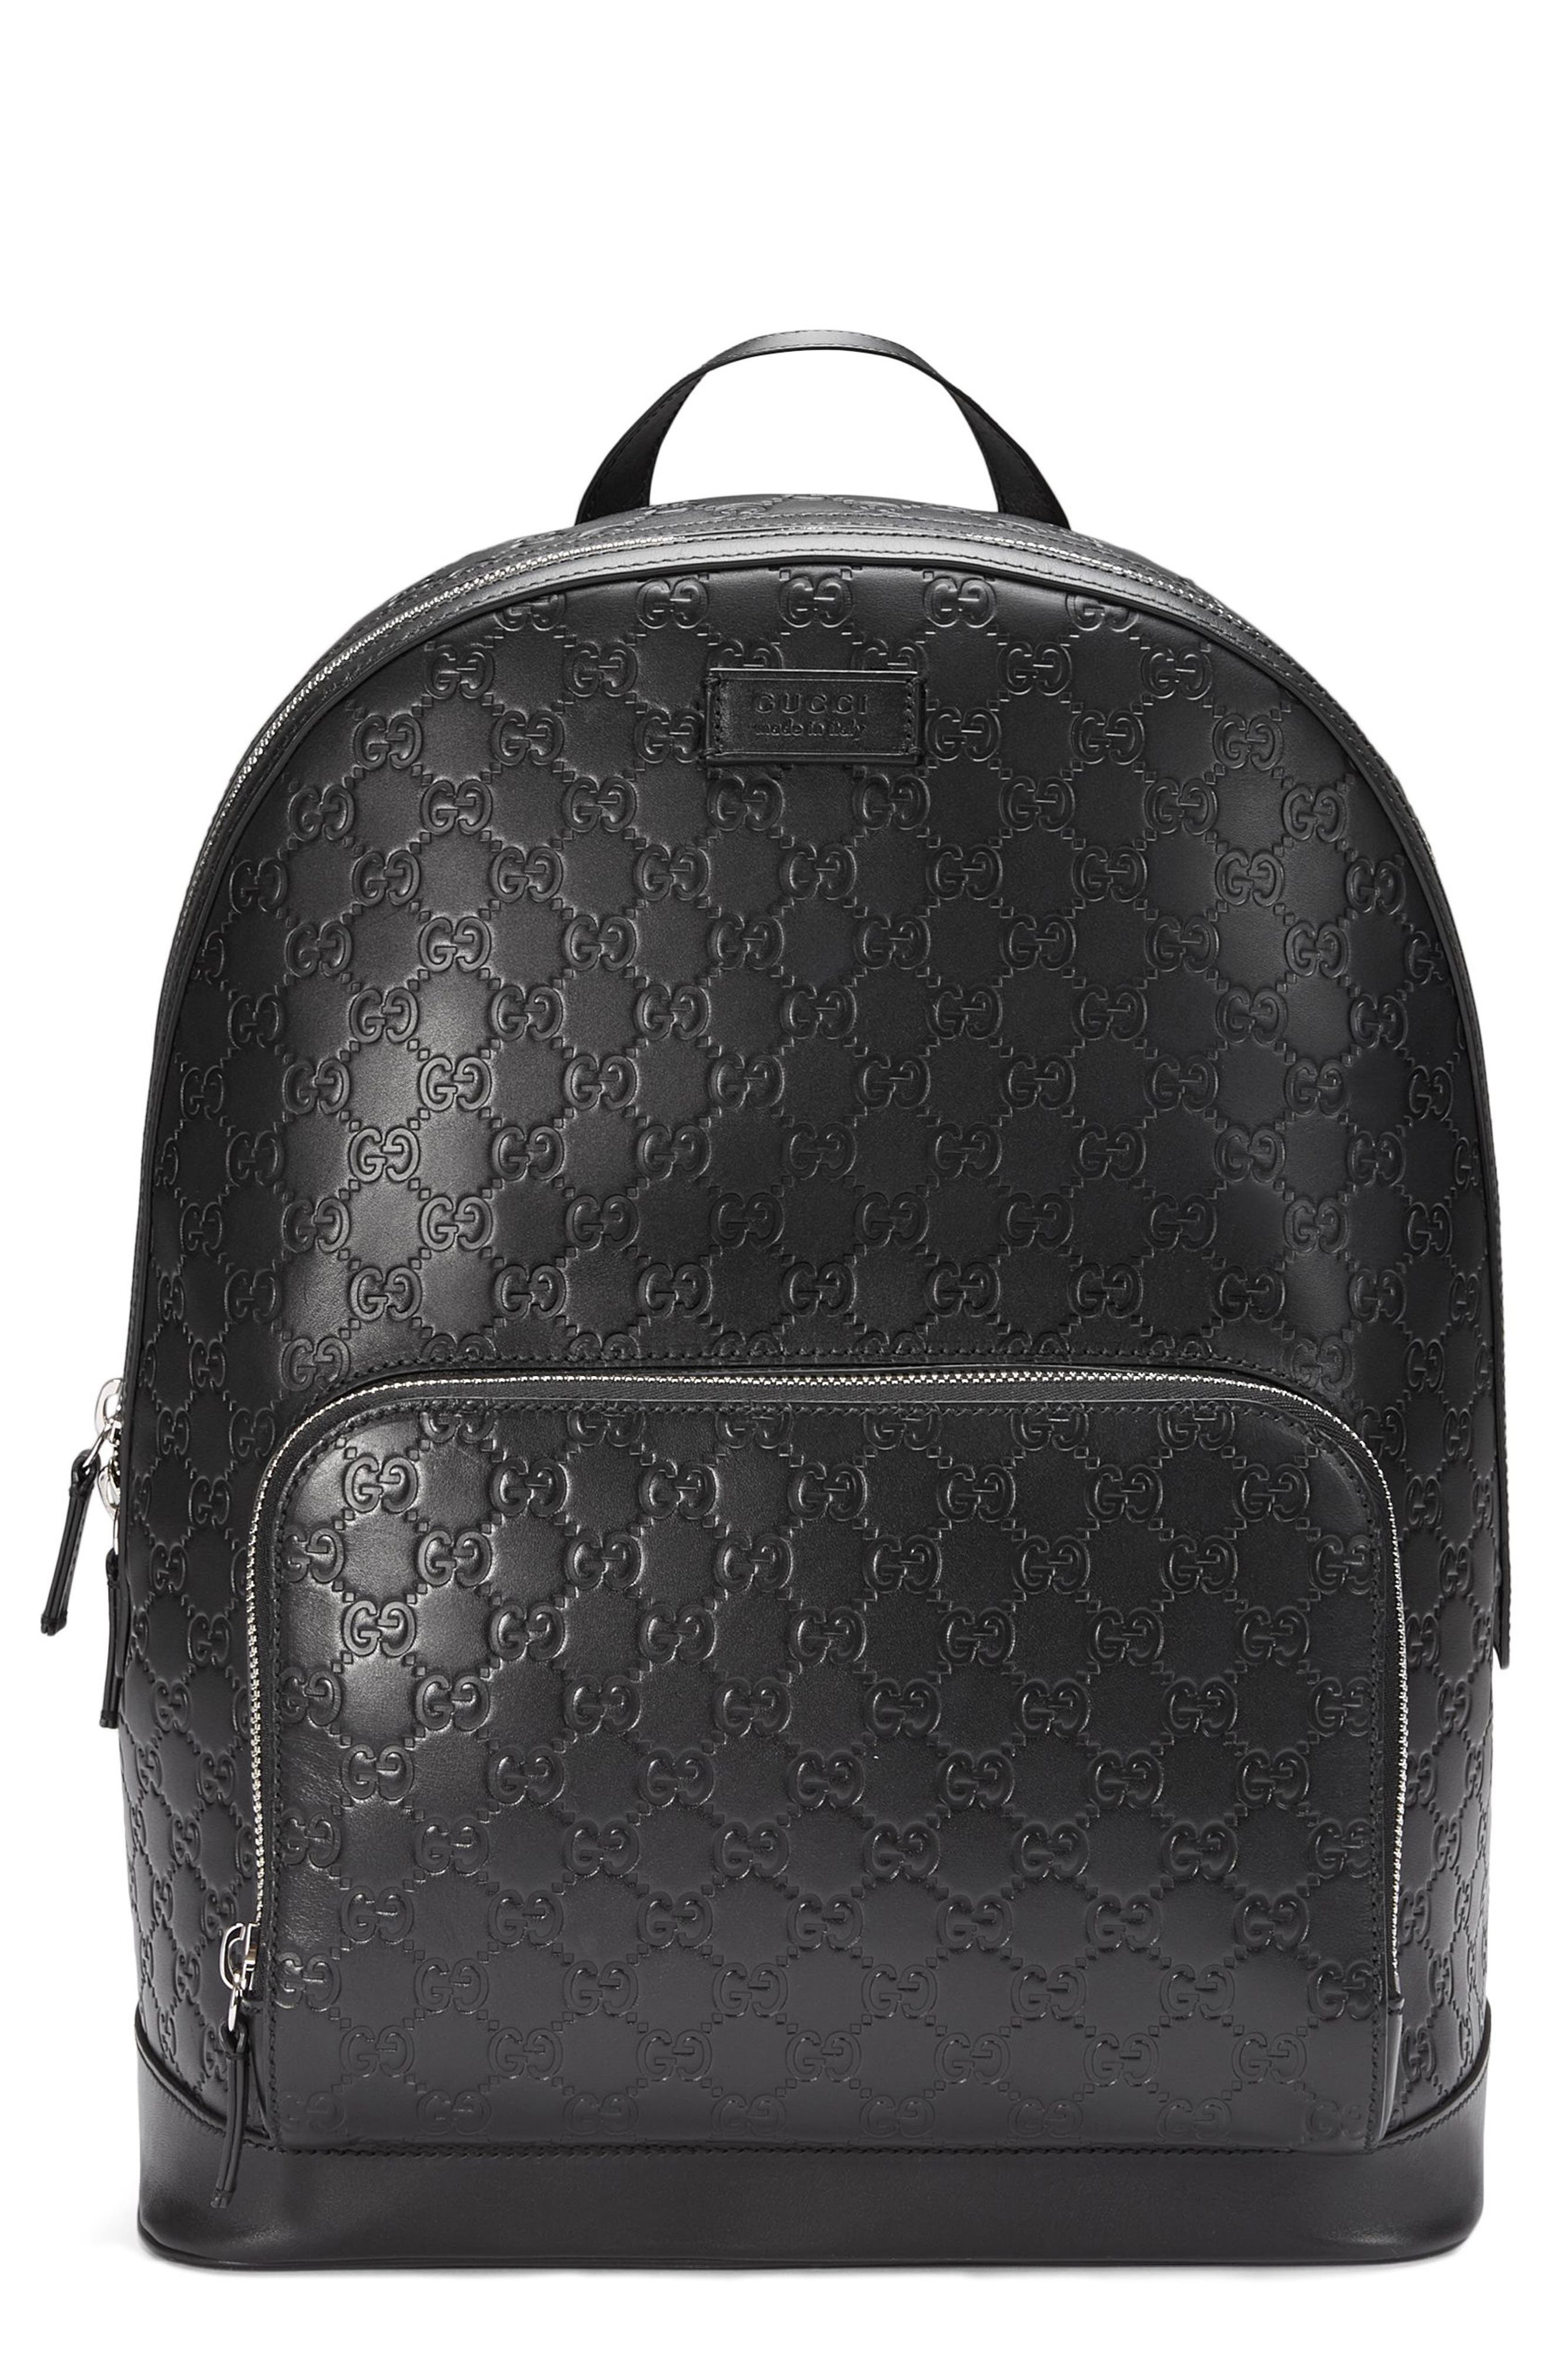 Embossed Leather Backpack,                         Main,                         color, 001